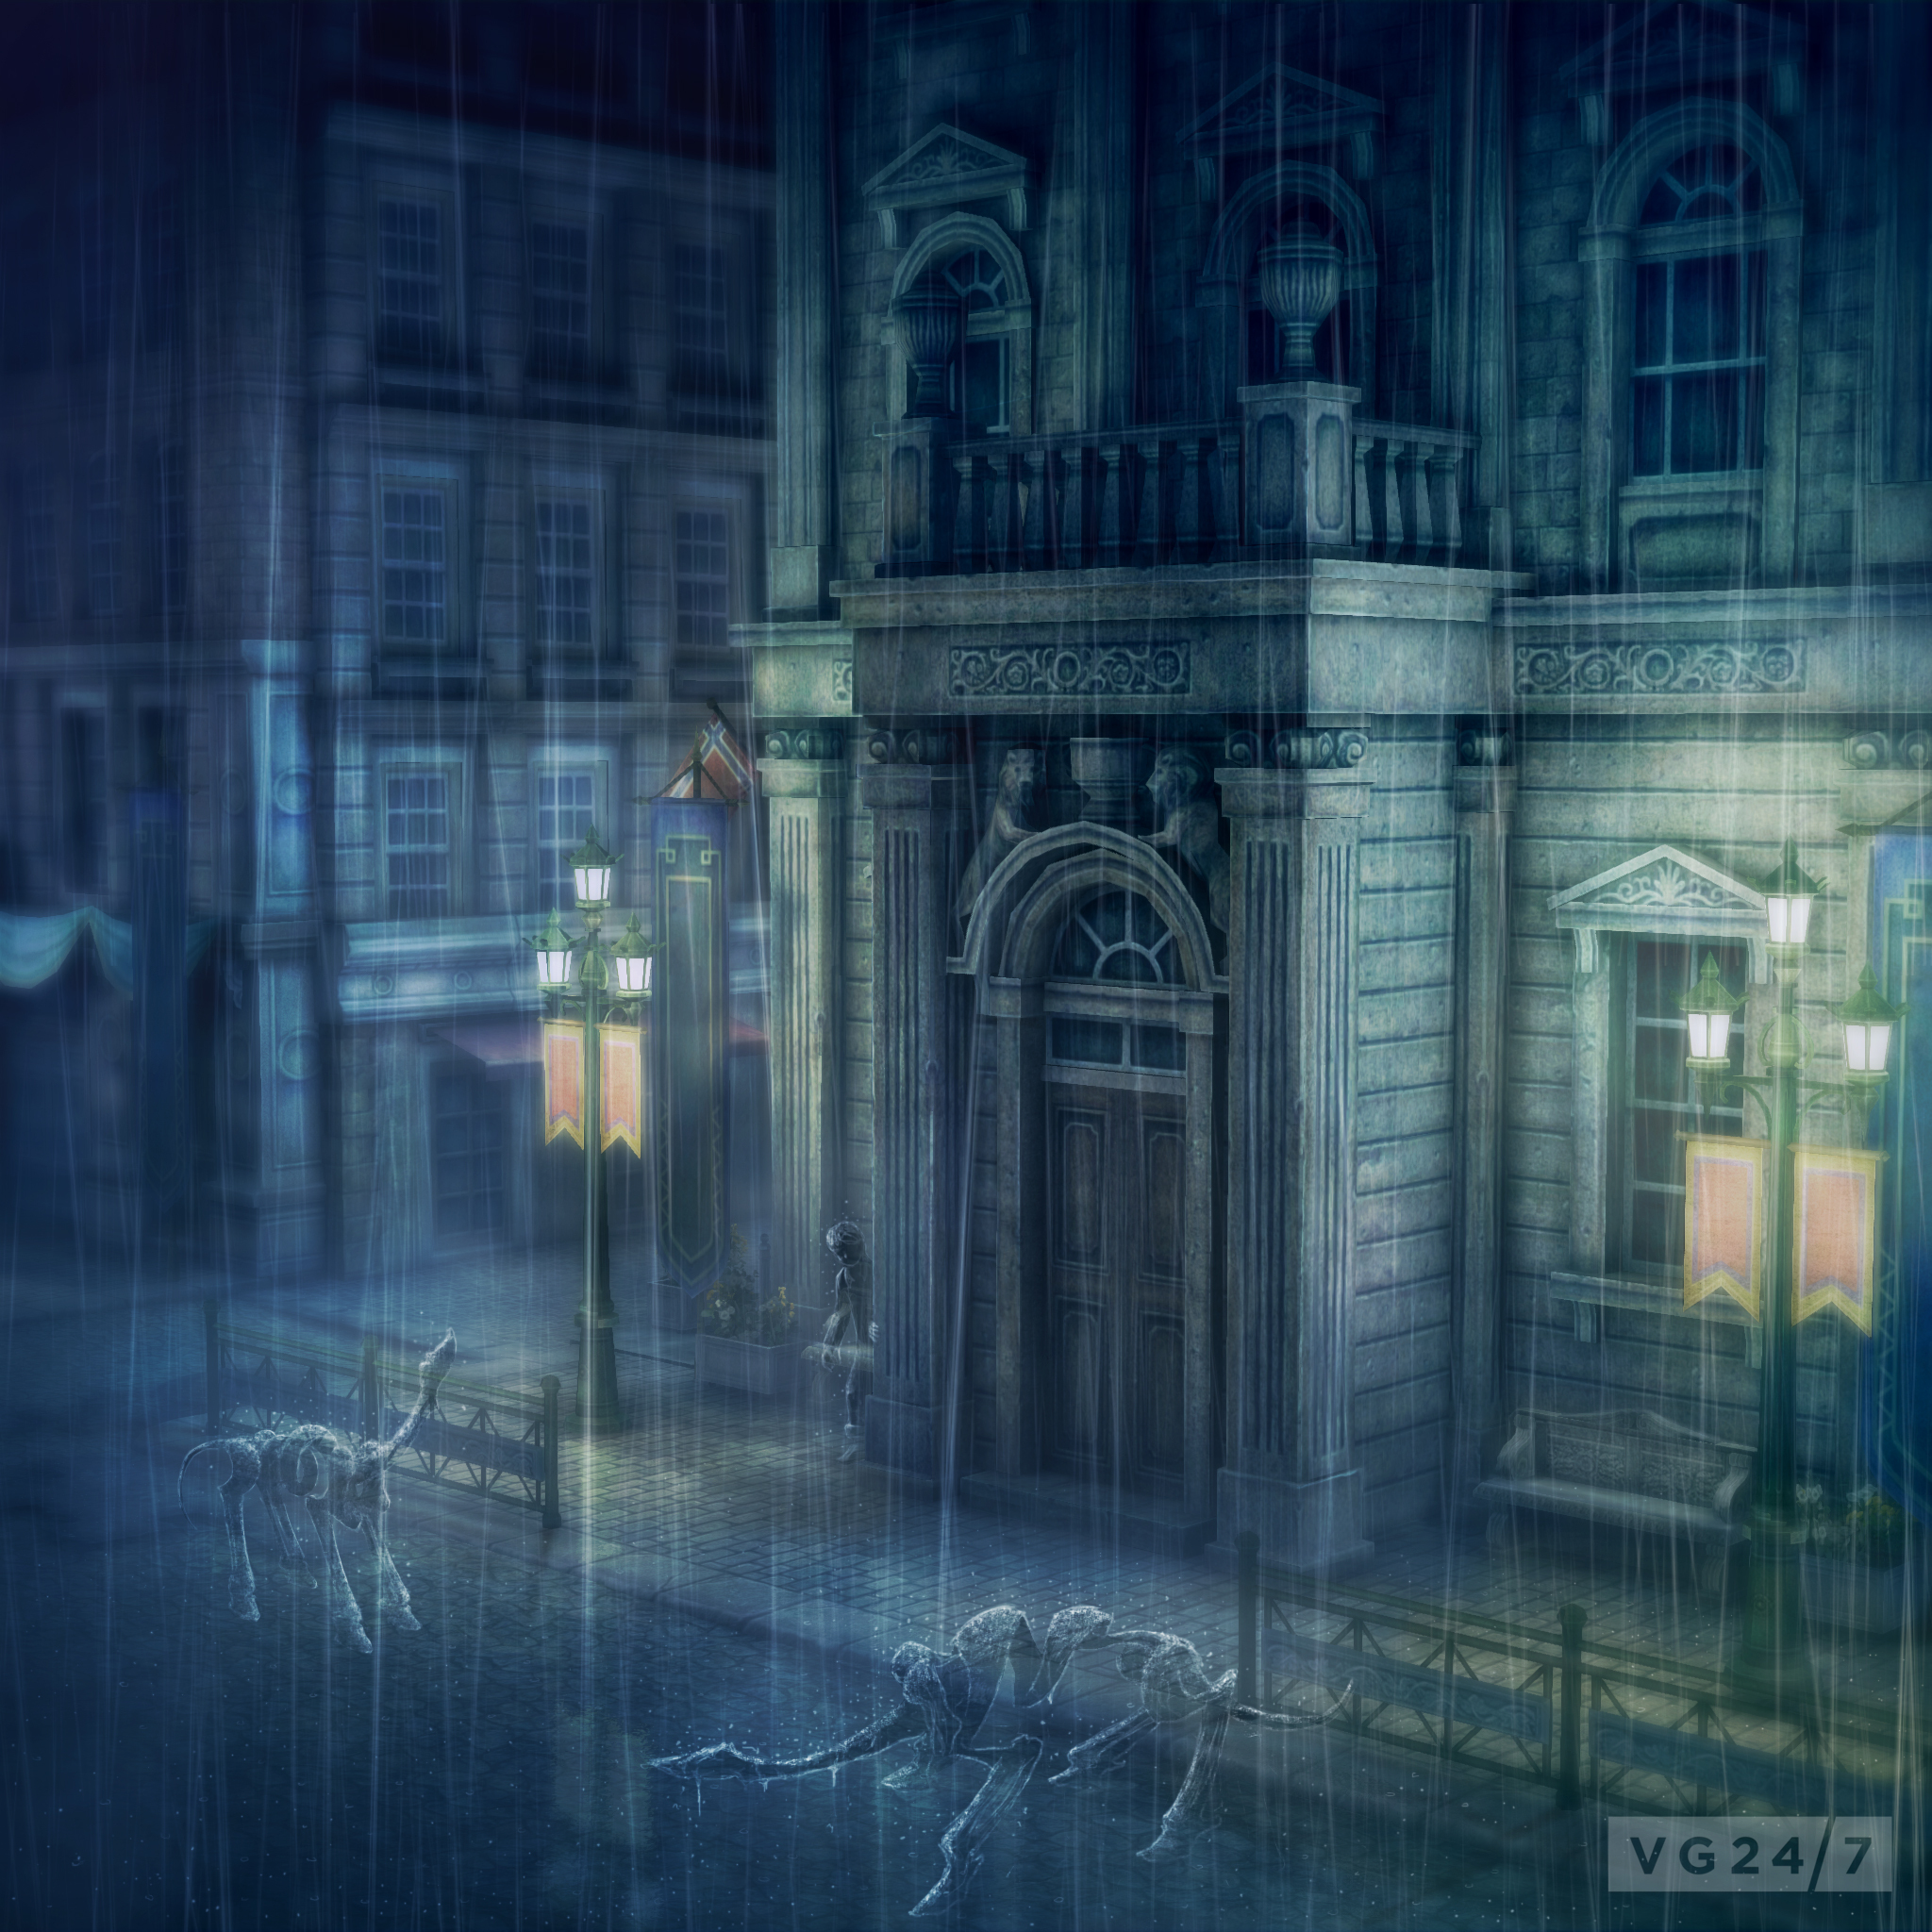 Rain screenshots and concept art released out of GDC - VG247